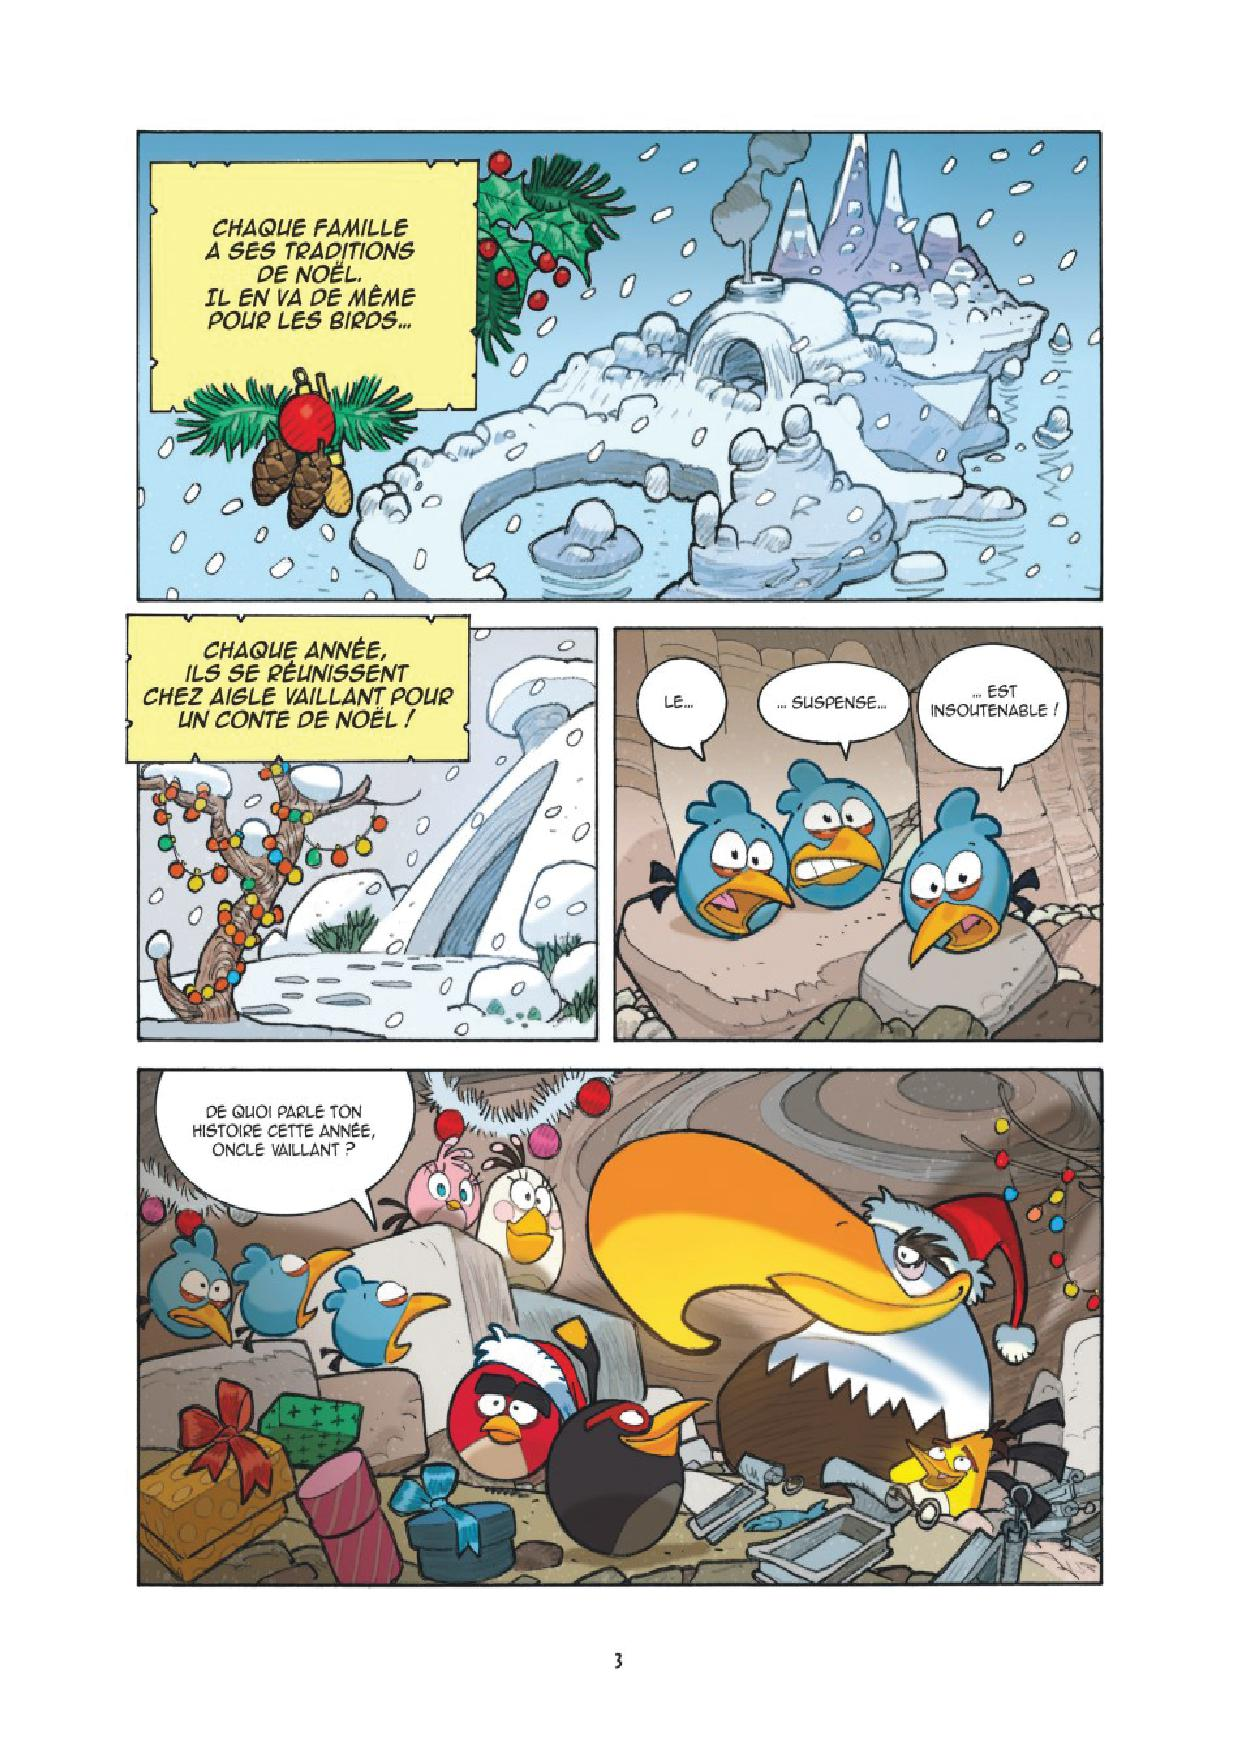 Angry_Birds#3_page3